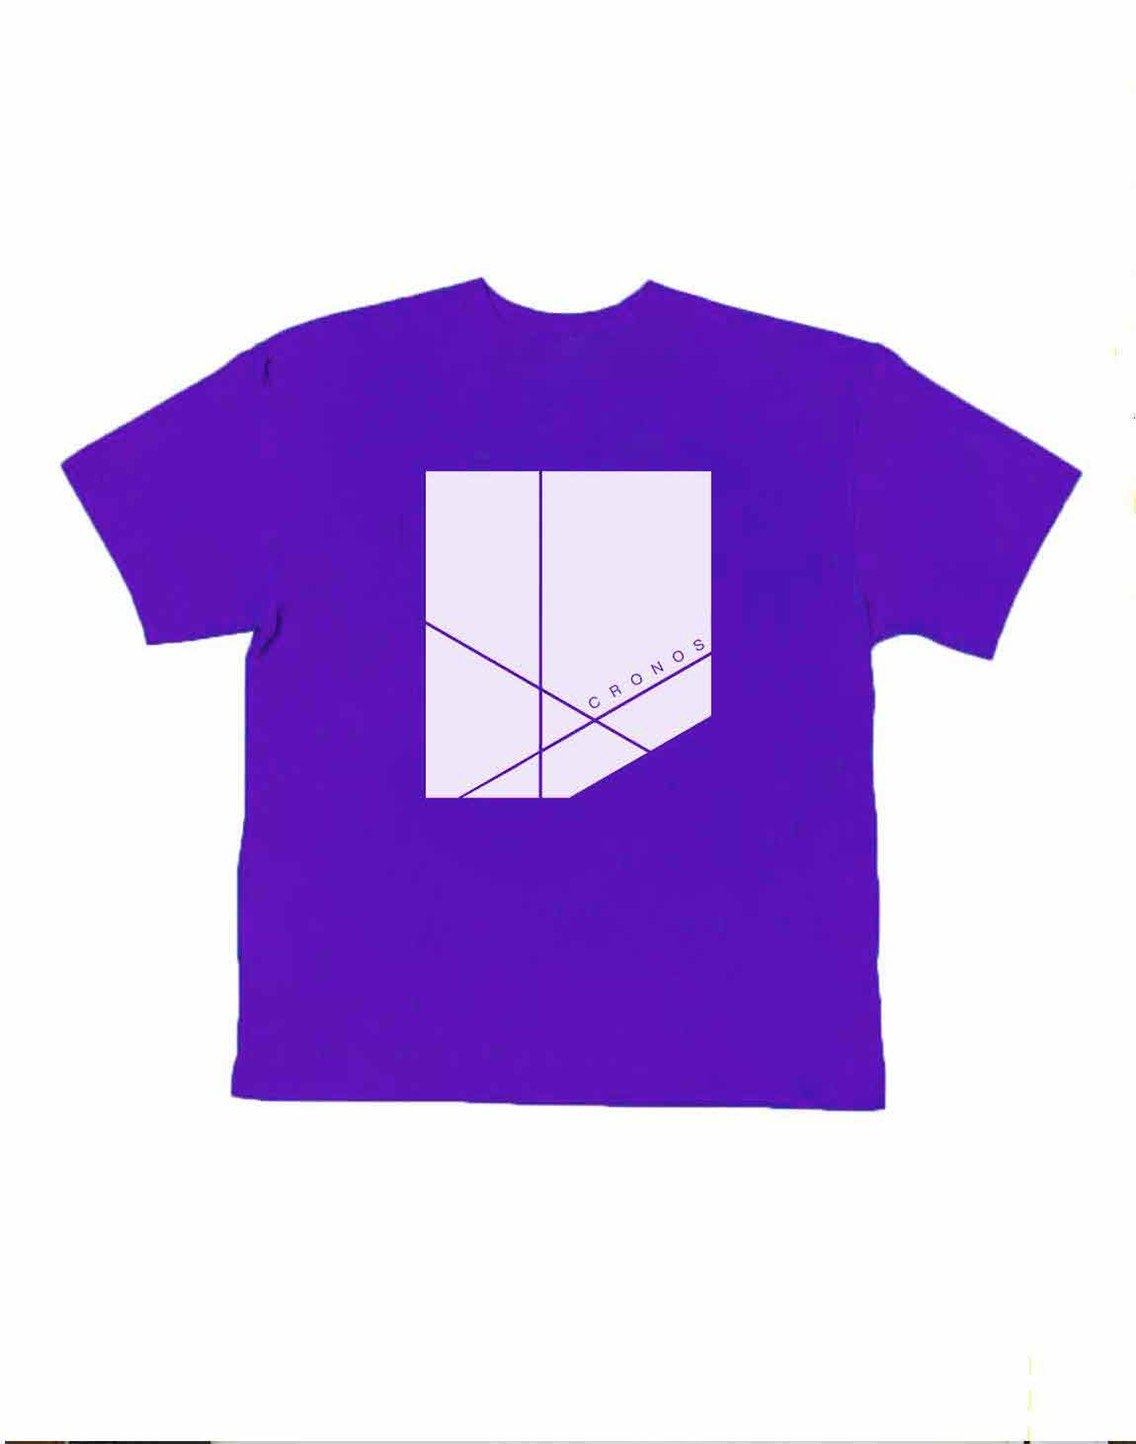 <img class='new_mark_img1' src='https://img.shop-pro.jp/img/new/icons1.gif' style='border:none;display:inline;margin:0px;padding:0px;width:auto;' />CRONOS NEW BOX LOGO OVER SIZE T-SHIRTS【PURPLE】